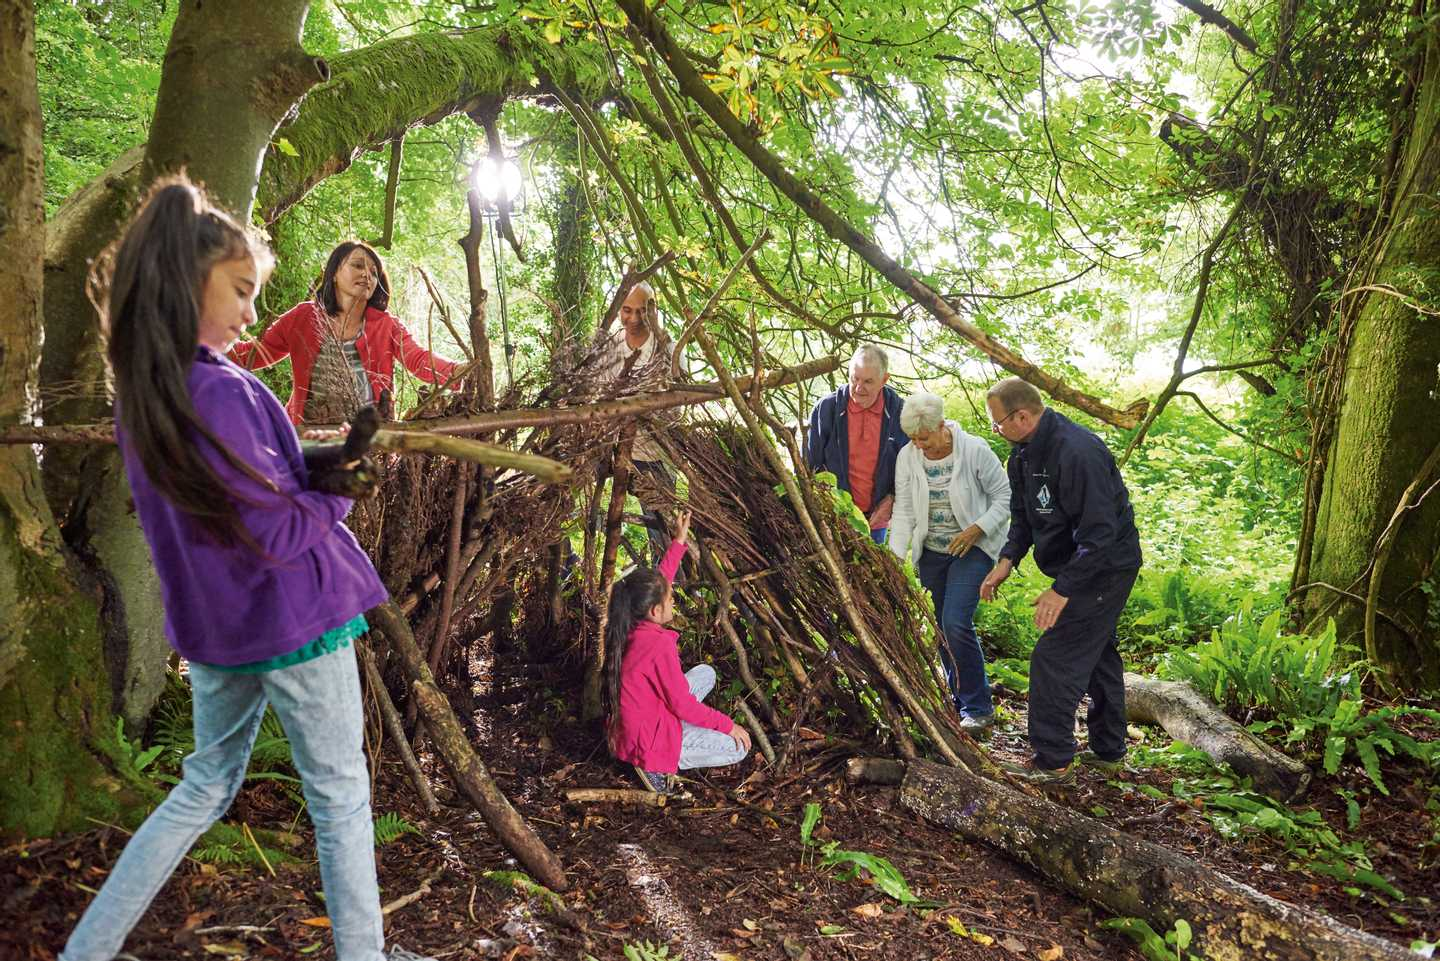 Guests in the woodland doing some Nature Rockz activities